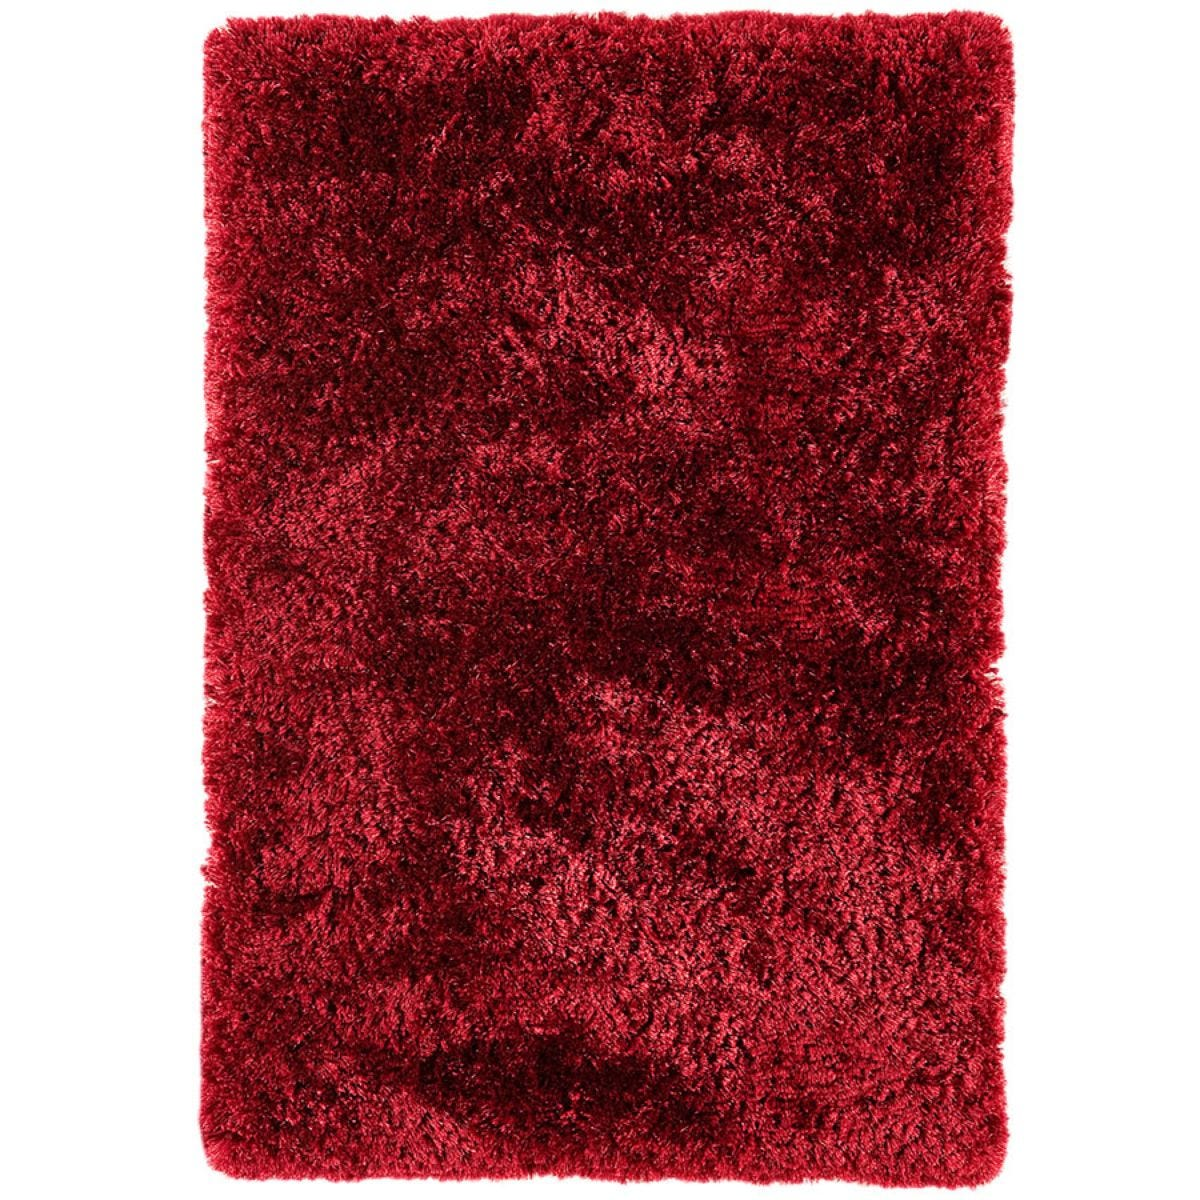 Asiatic Plush Shaggy Rug, 70 x 140cm - Red